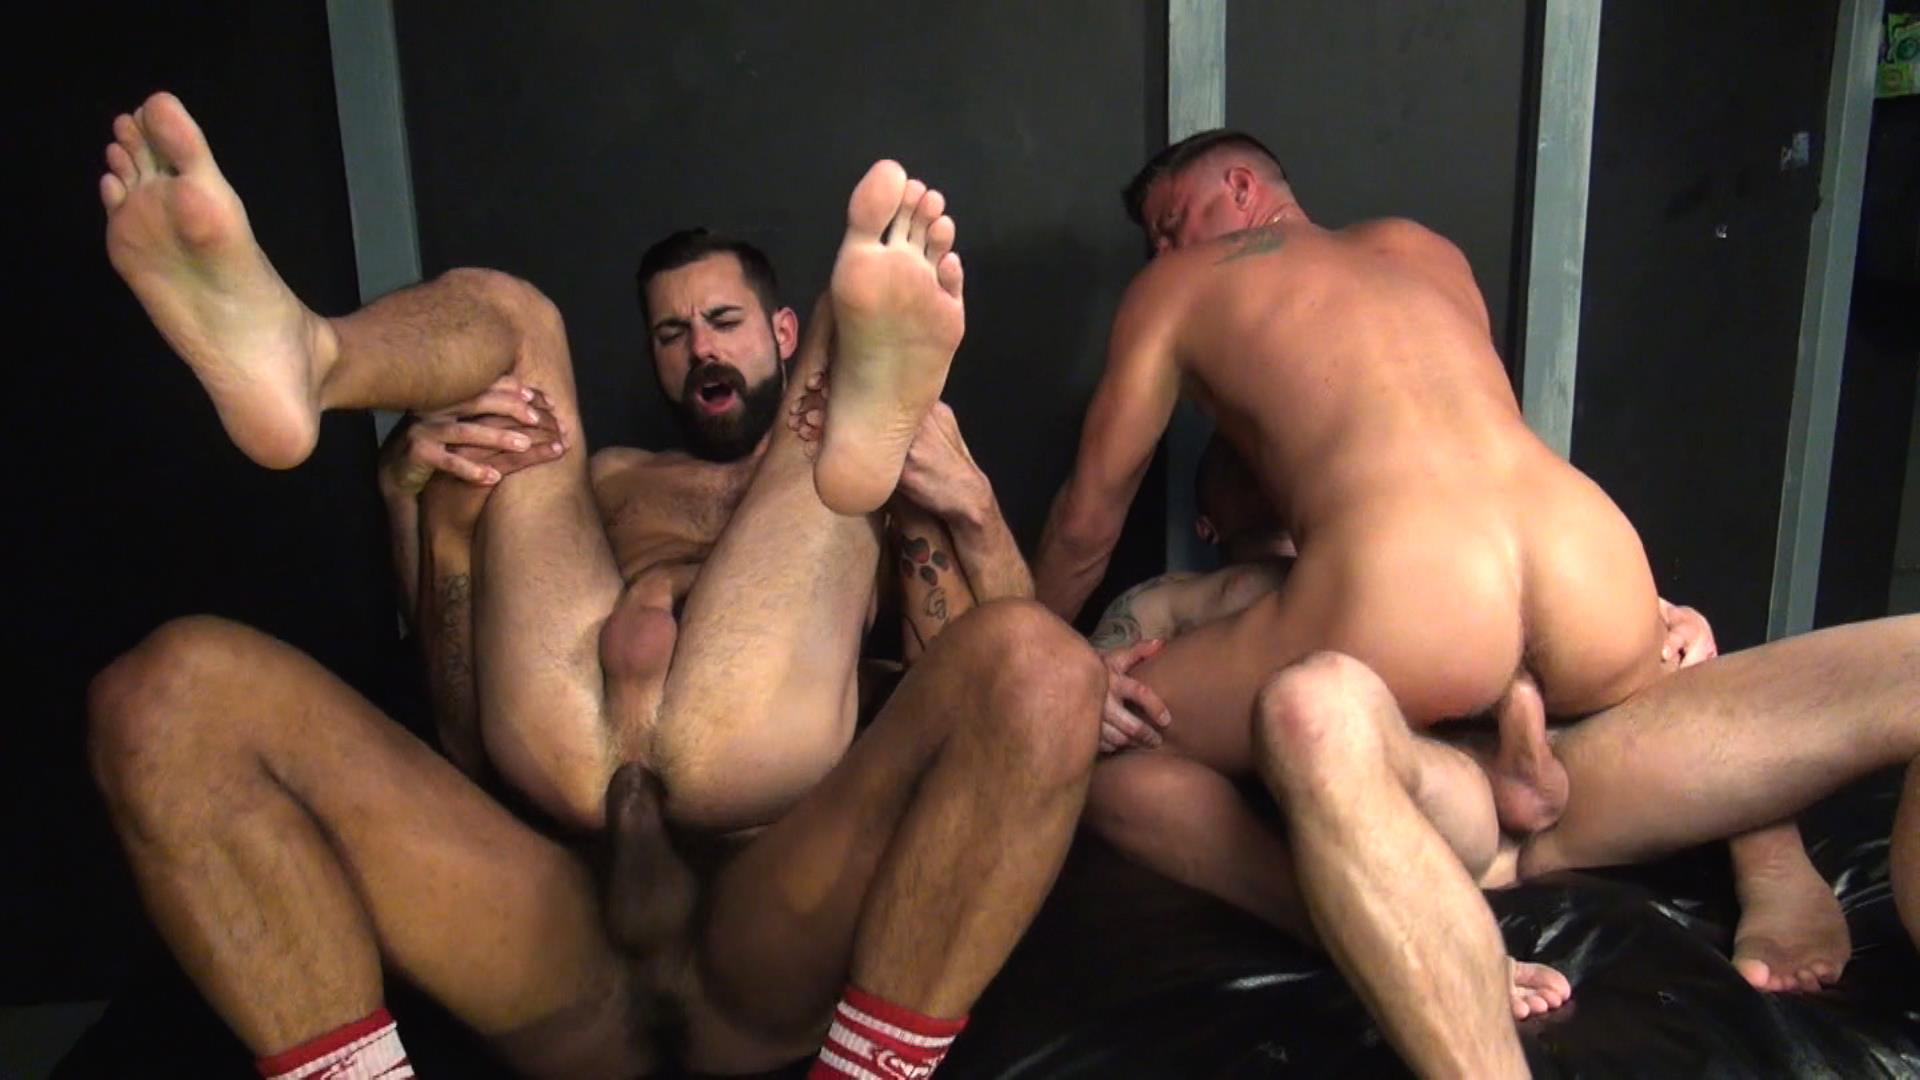 Raw-Fuck-Club-Raw-Fuck-Club-Max-Cameron-and-Christian-Matthews-and-Kory-Mitchel-and-Dean-Brody-Bareback-Bathhouse-Amateur-Gay-Porn-8 Four Way Bareback Fucking And Cum Fest At The Bathhouse